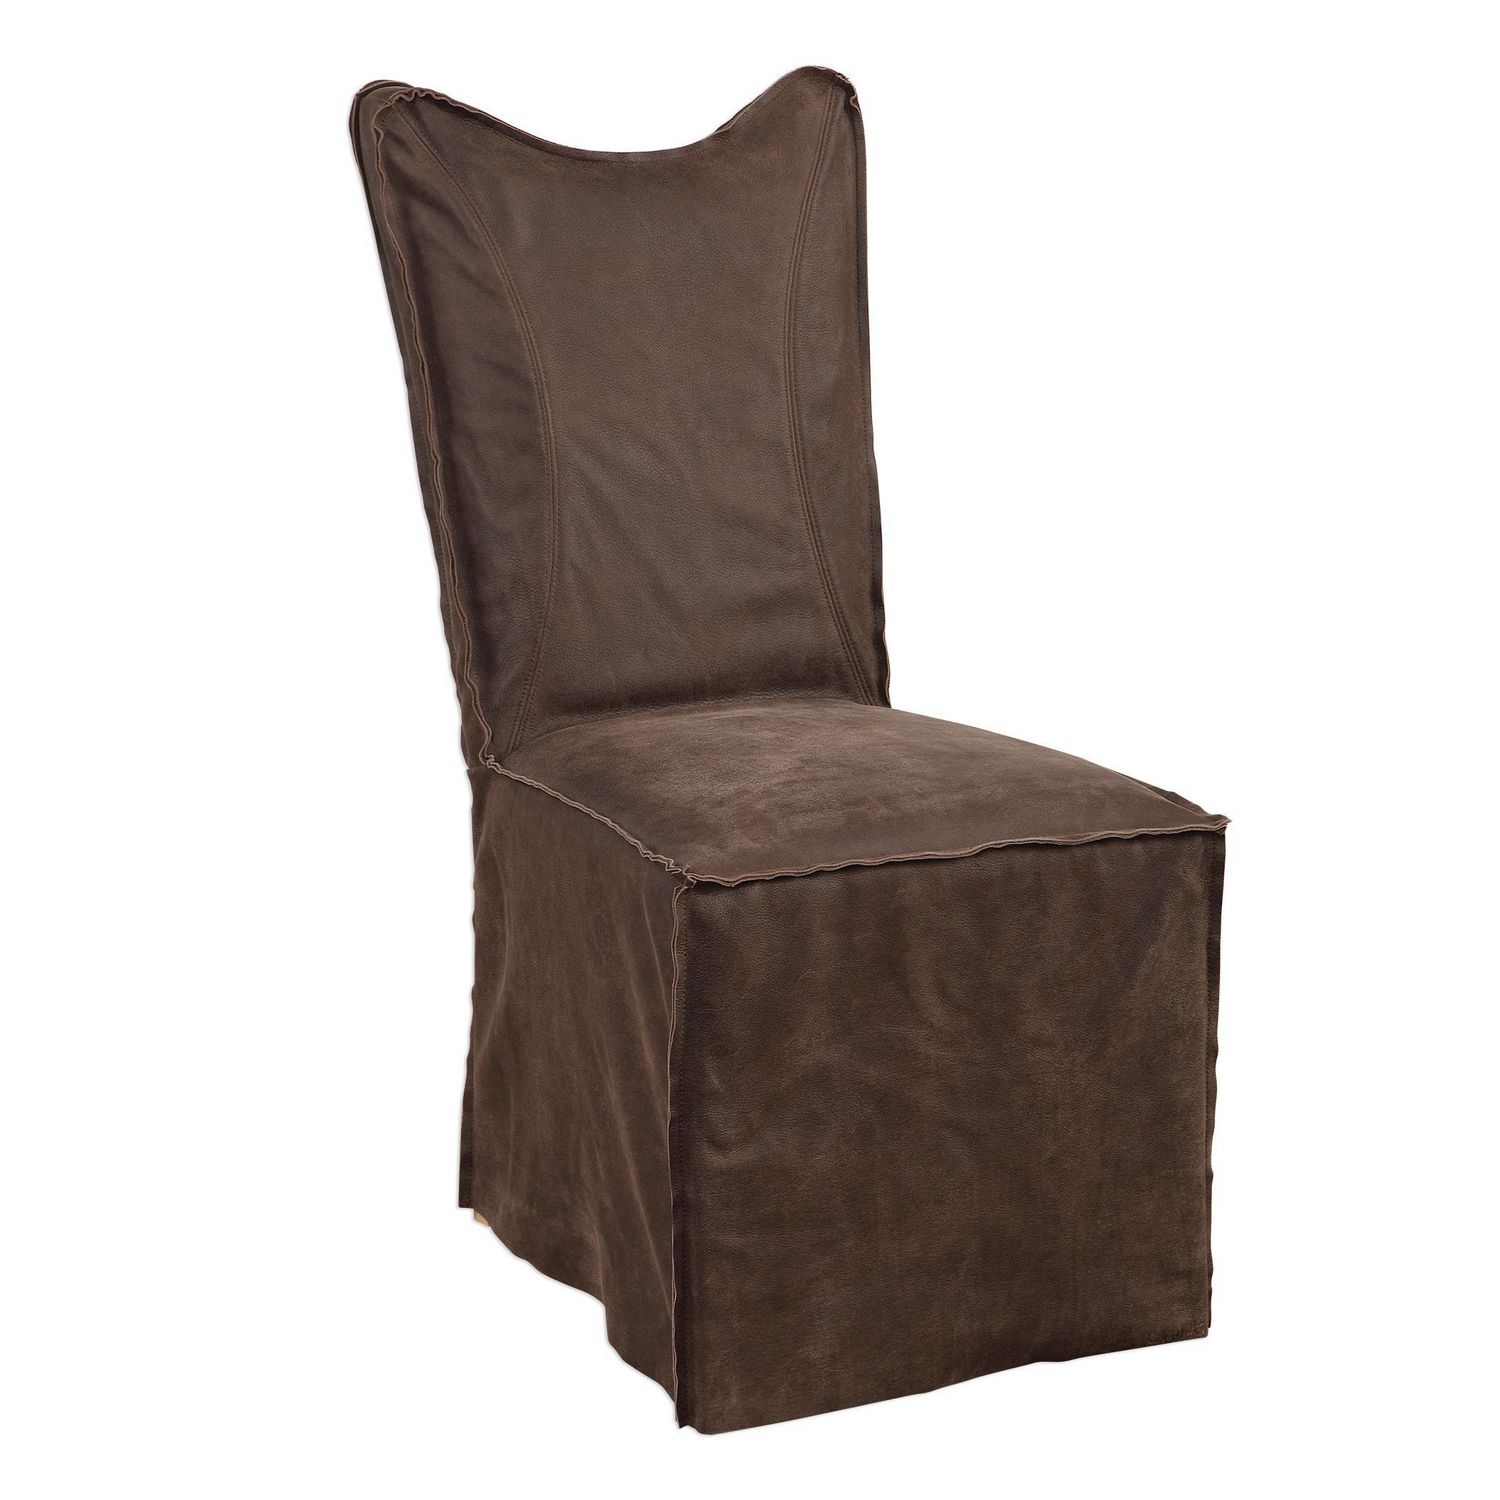 Uttermost Delroy Armless Chairs - Set of 2 - Chocolate